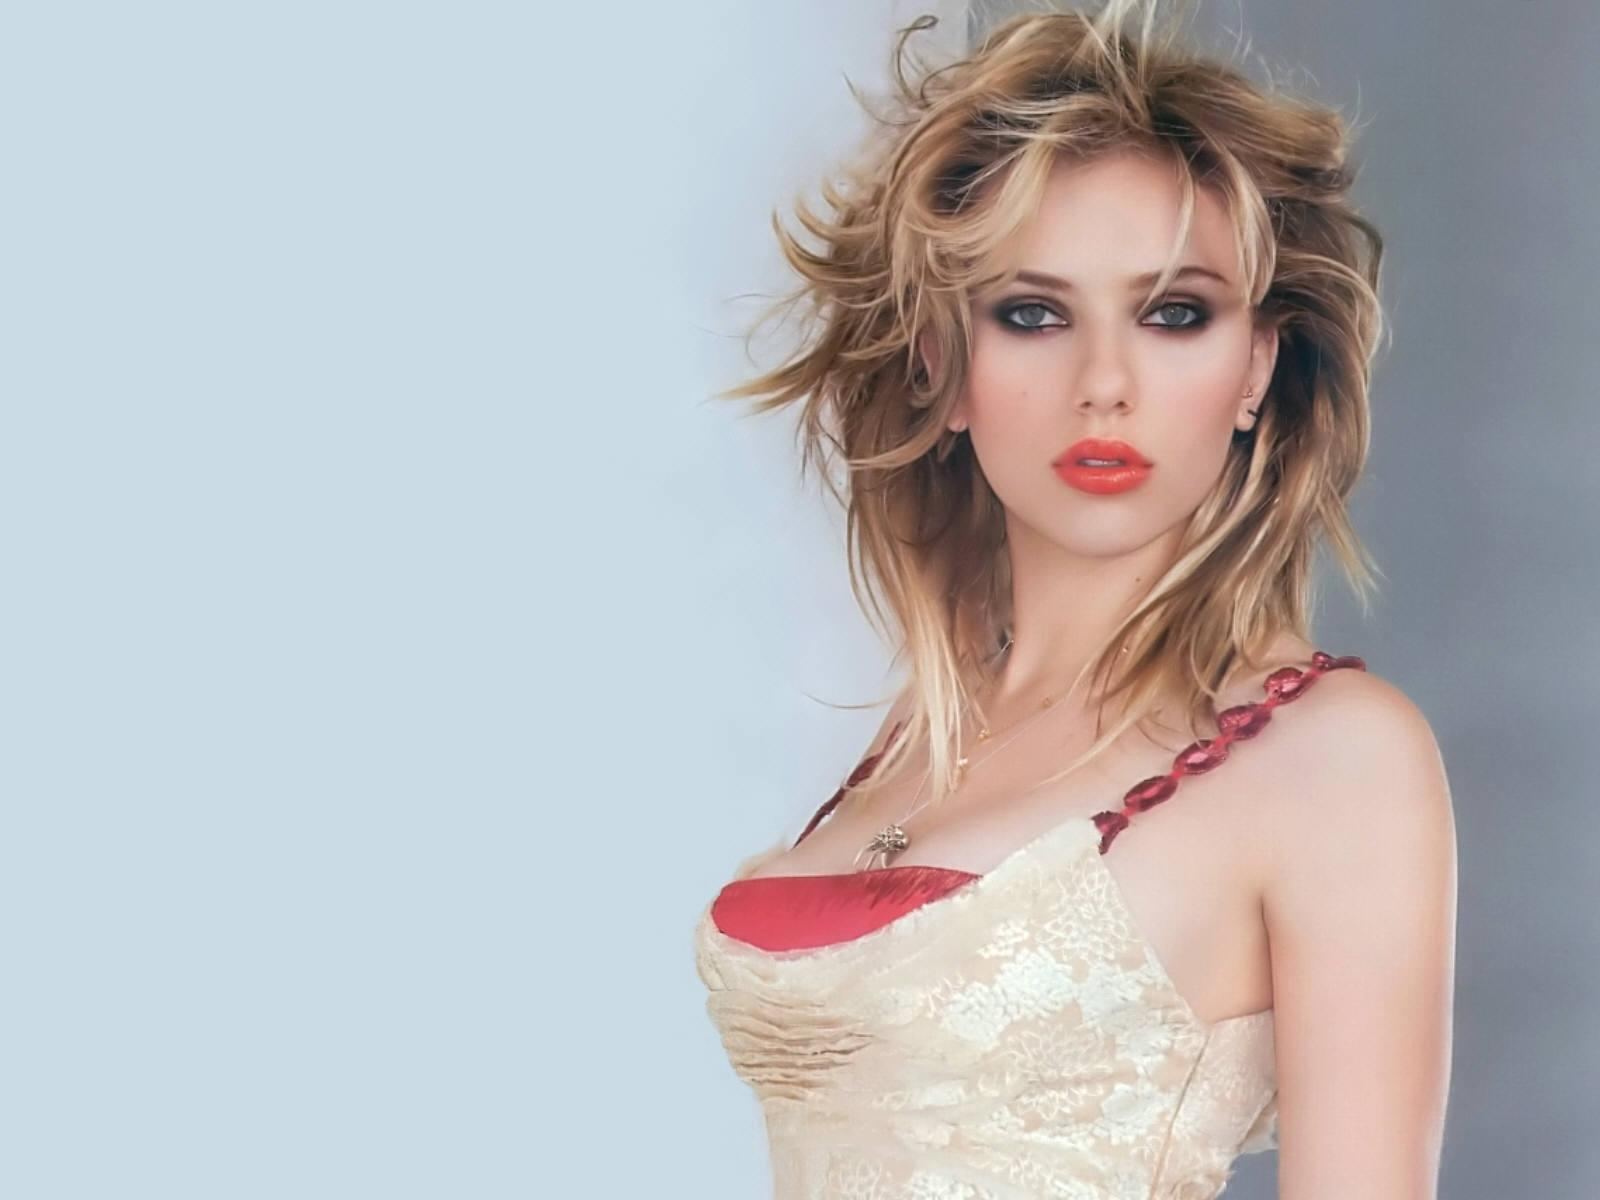 scarlett johansson hot hd - photo #10